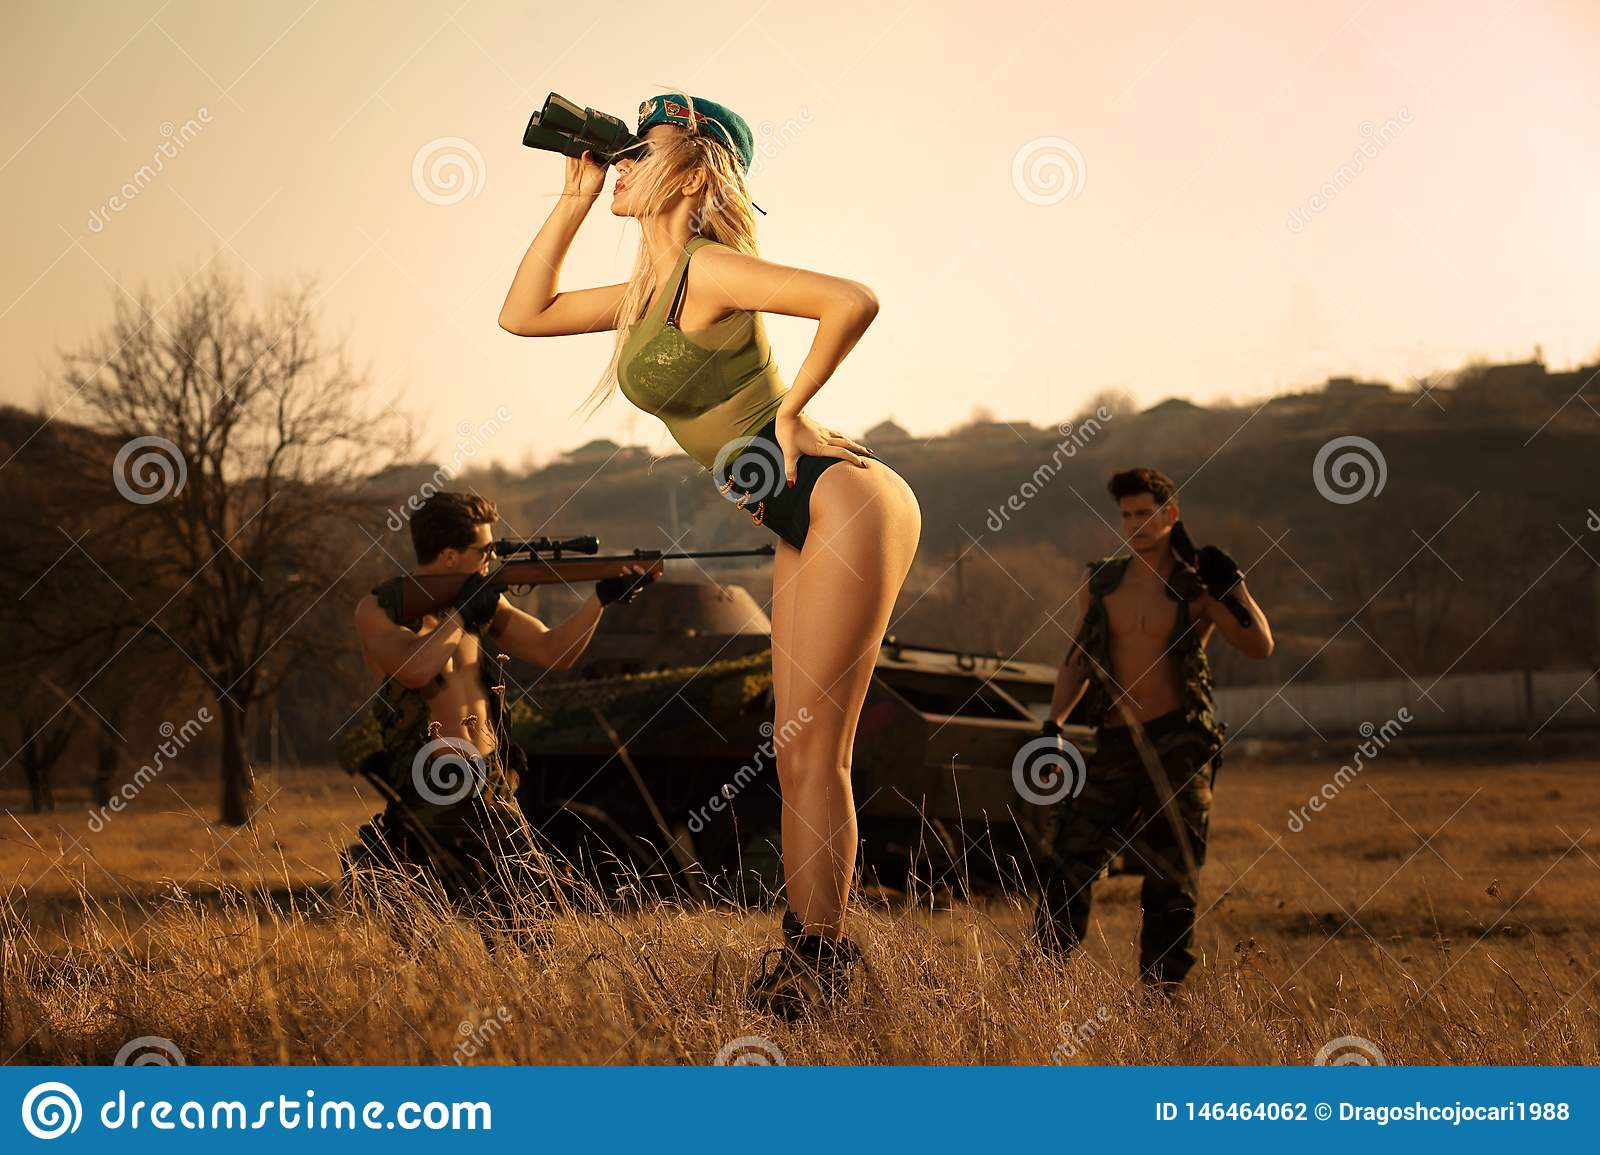 Sexy military girl with binoculars searching something ,on the highlands background with strong armed soldiers.